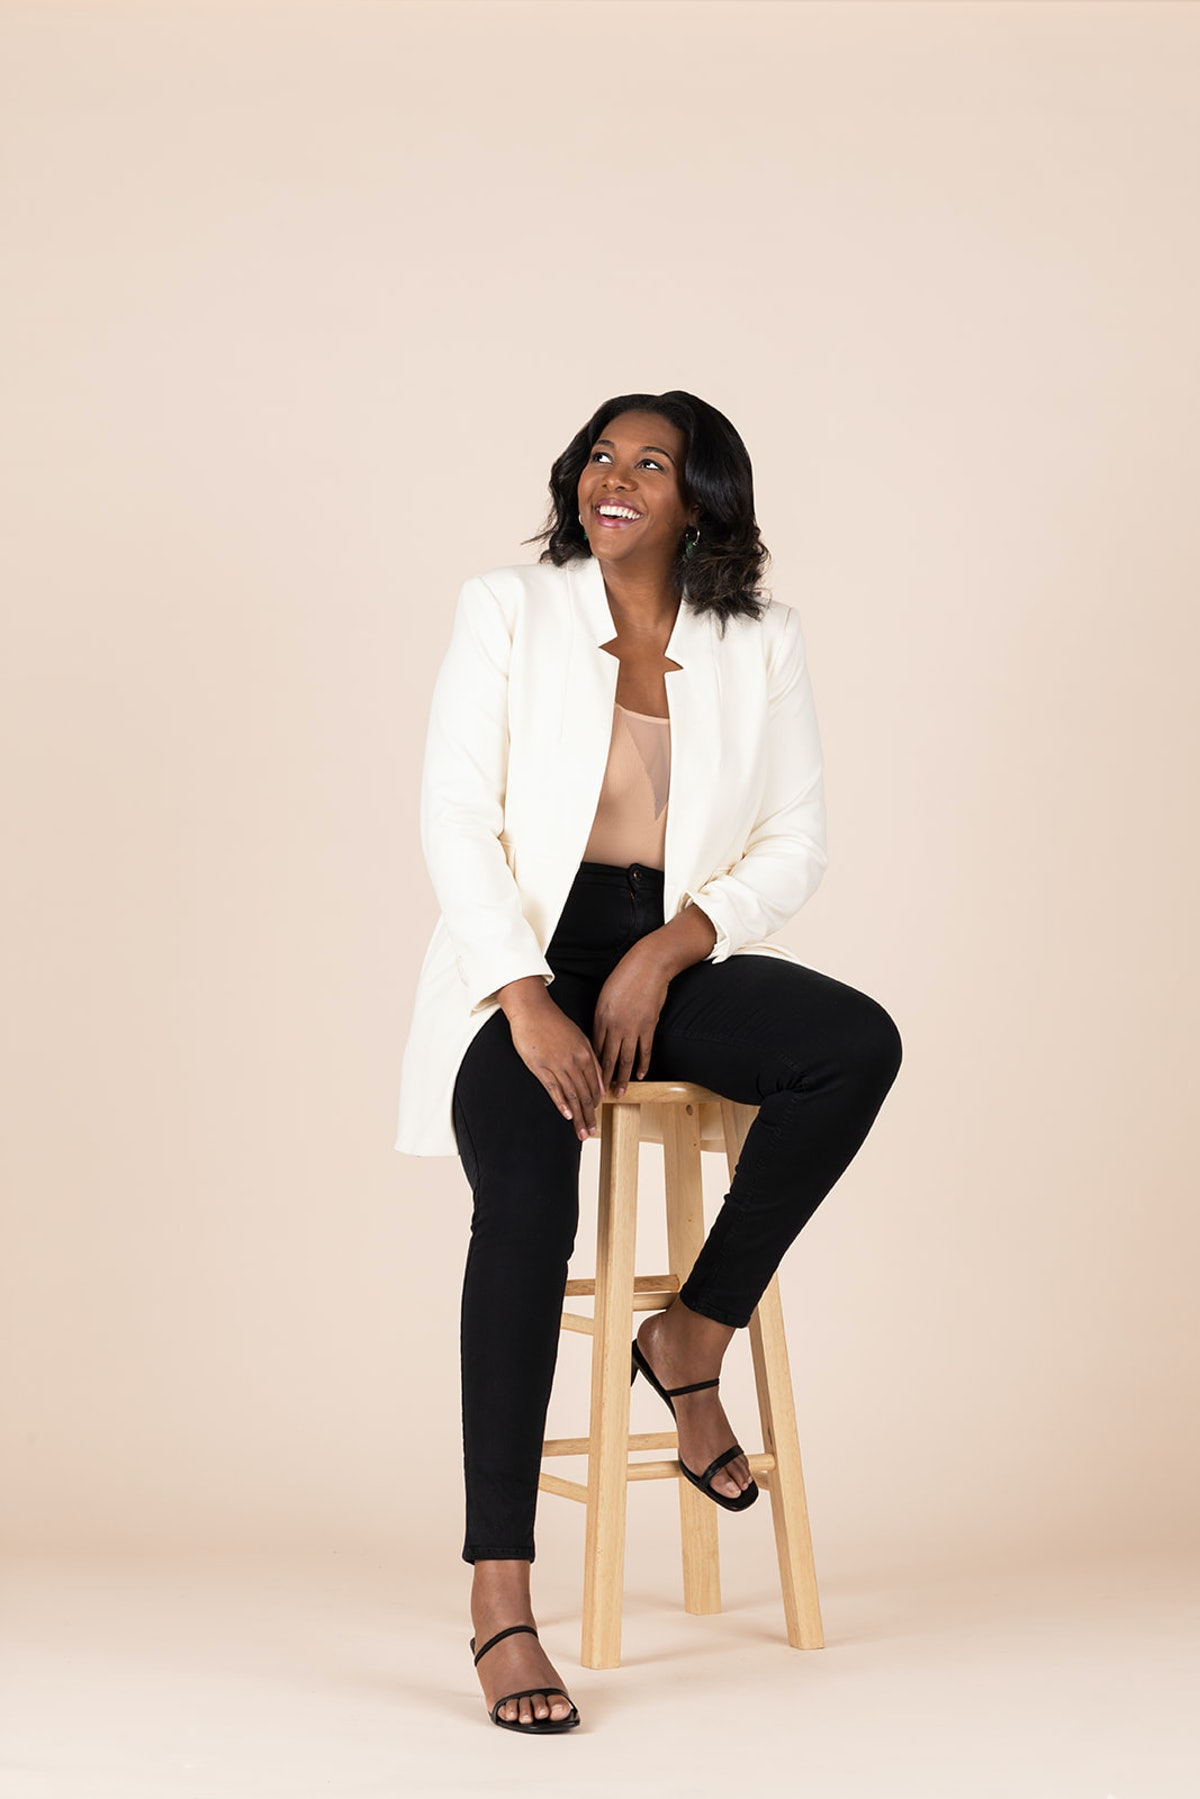 Founder of Glory Skincare Alisia Ford sits on a stool.